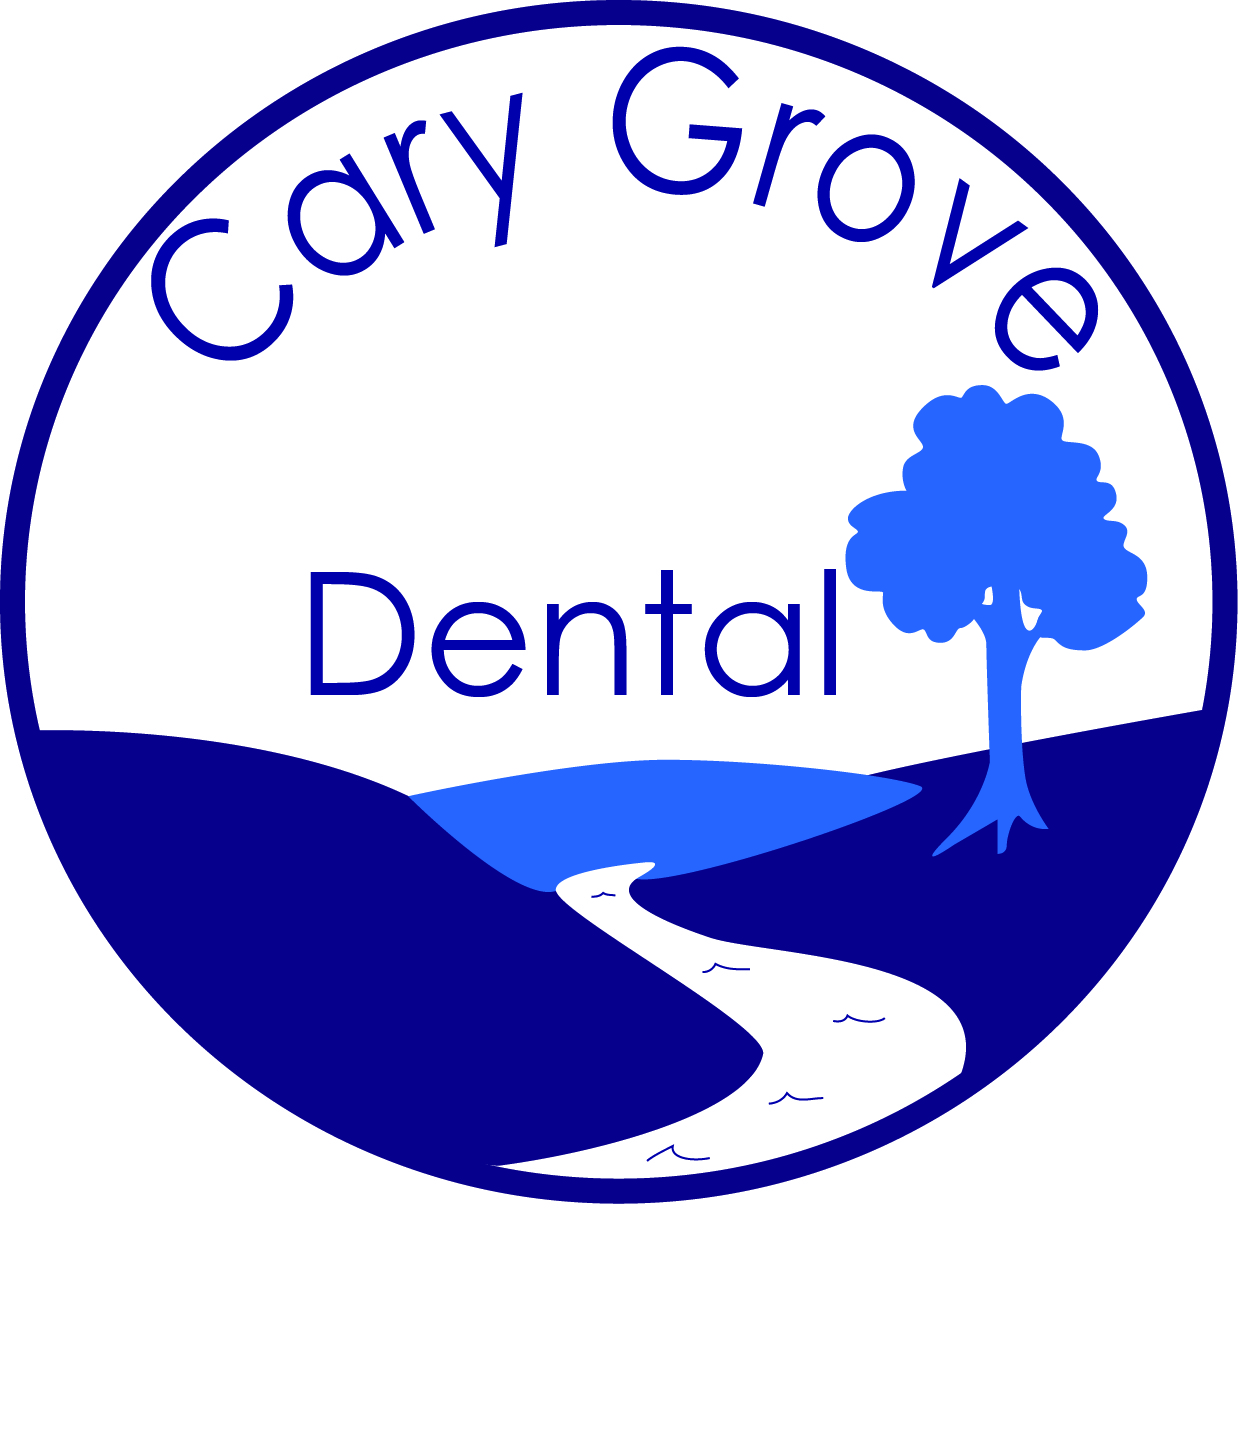 Cary Grove Dental